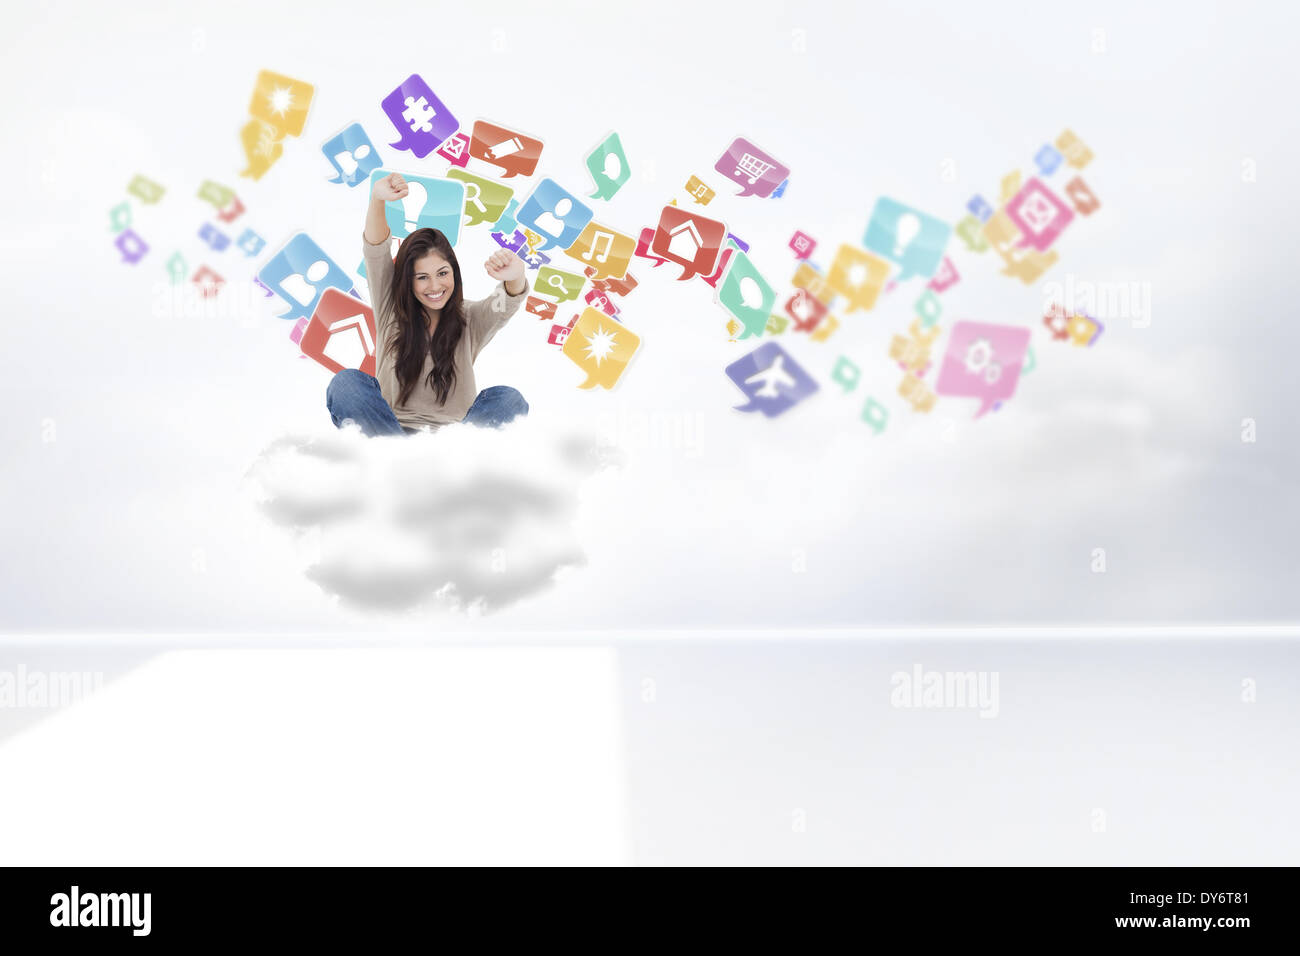 Composite image of woman looks straight ahead as she celebrates in front of her laptop - Stock Image